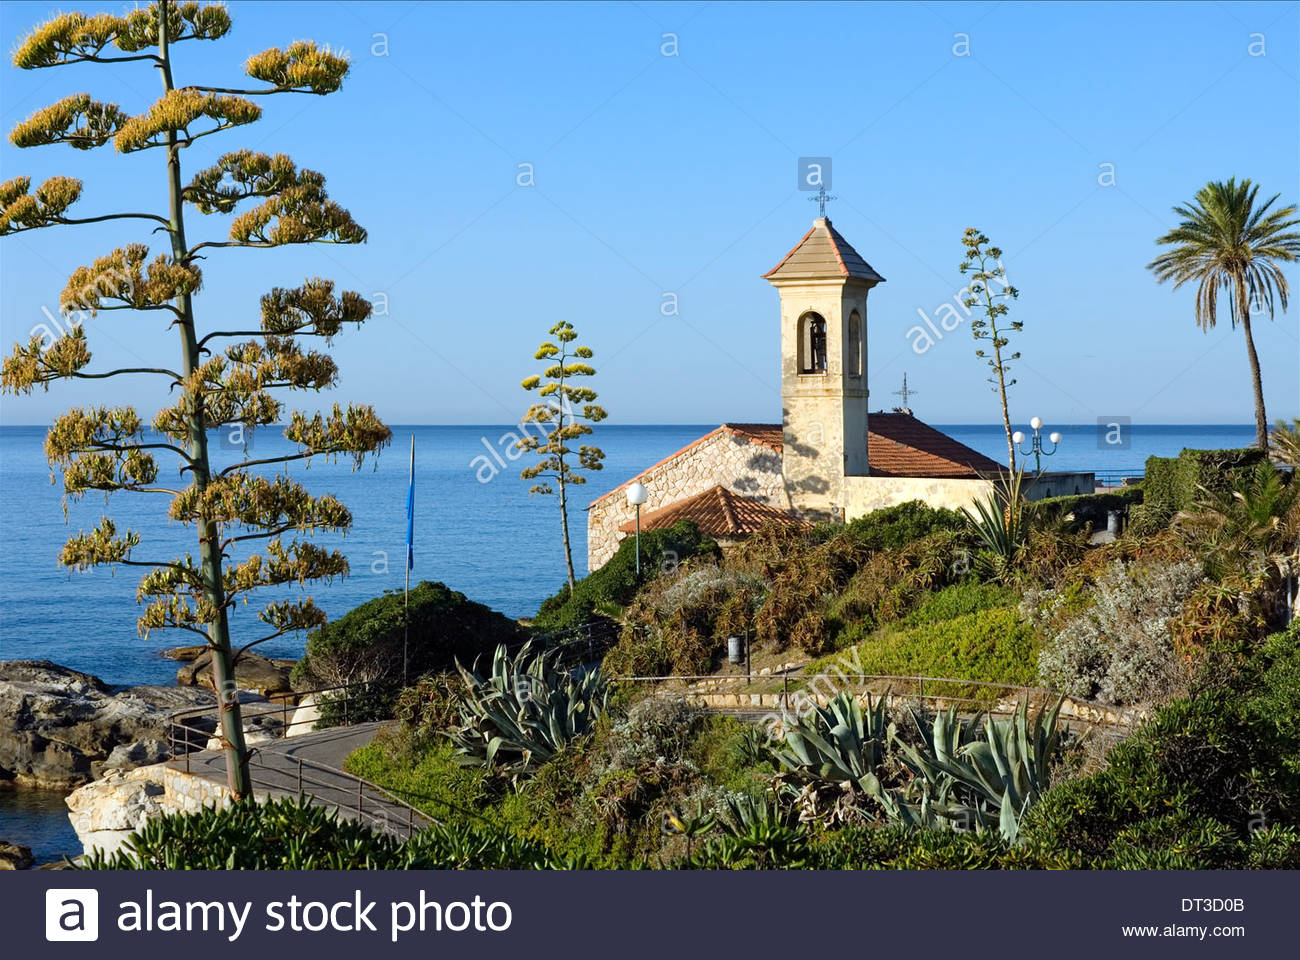 Chiesa di Sant' Ampelio at the Coastline of Cape S. Ampelio in Bordighera, Liguria, North West Italy. - Stock Image